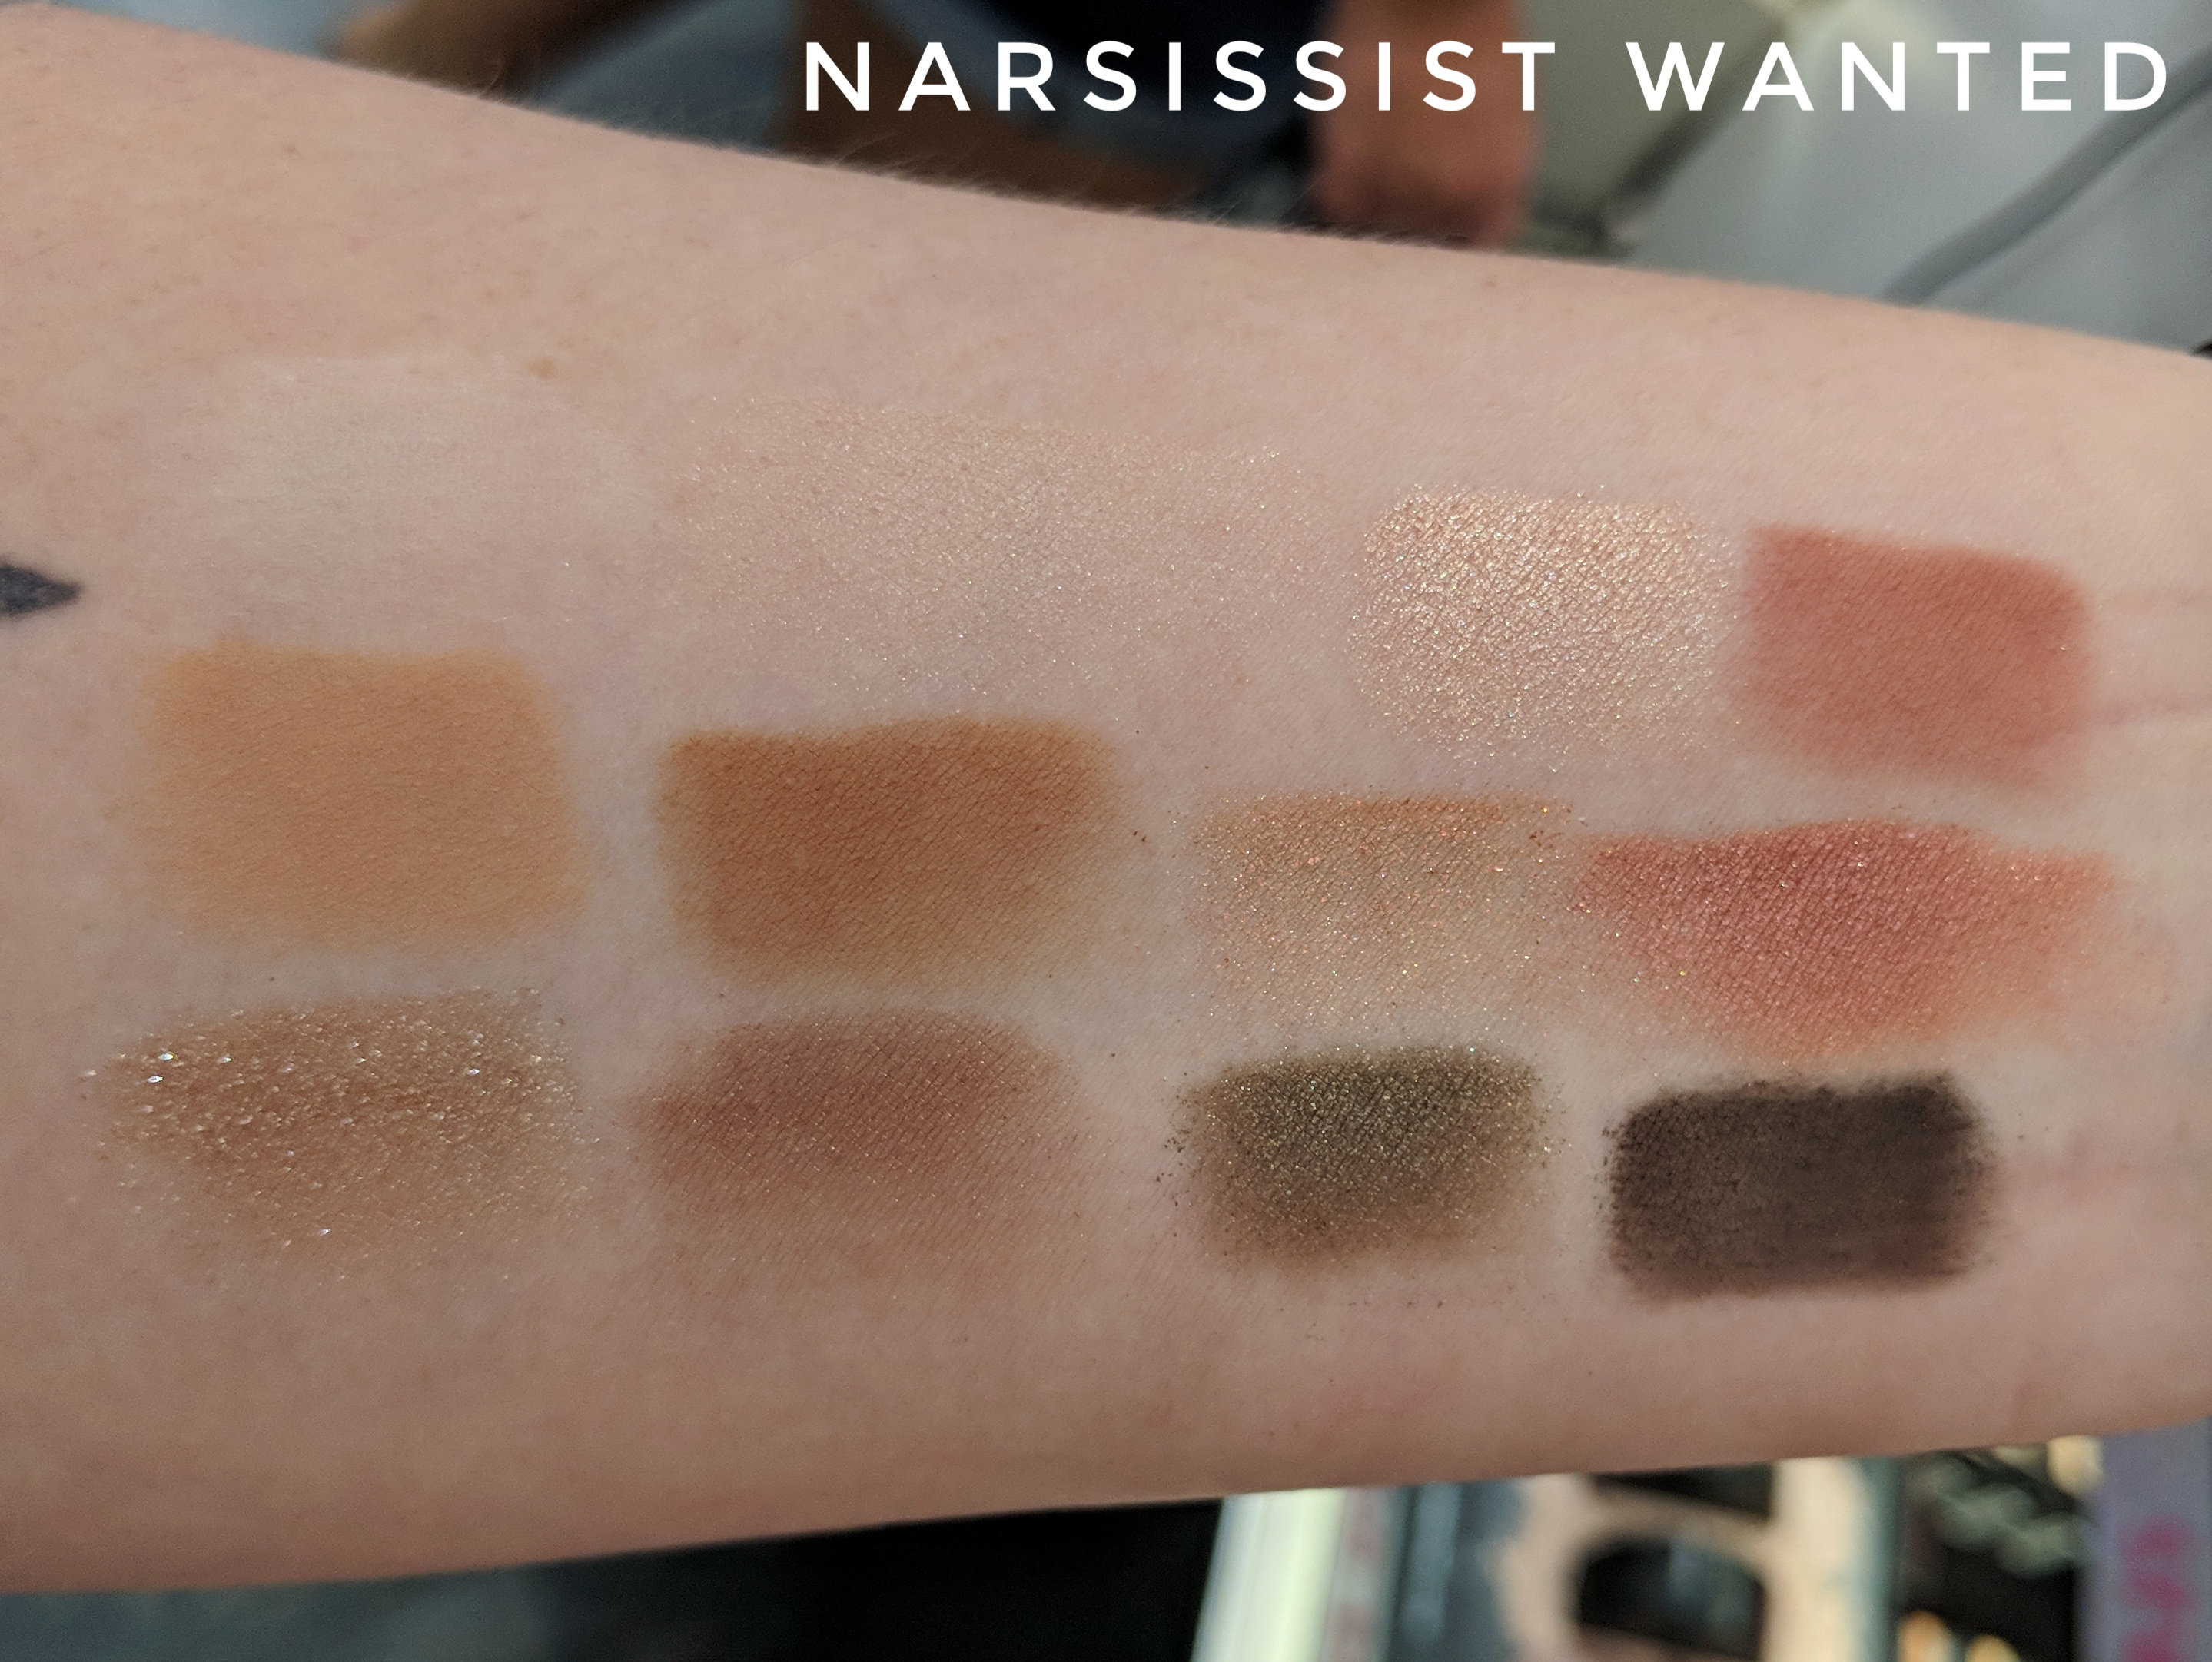 NARS NARSissist Wanted Eyeshadow Palette Swatches